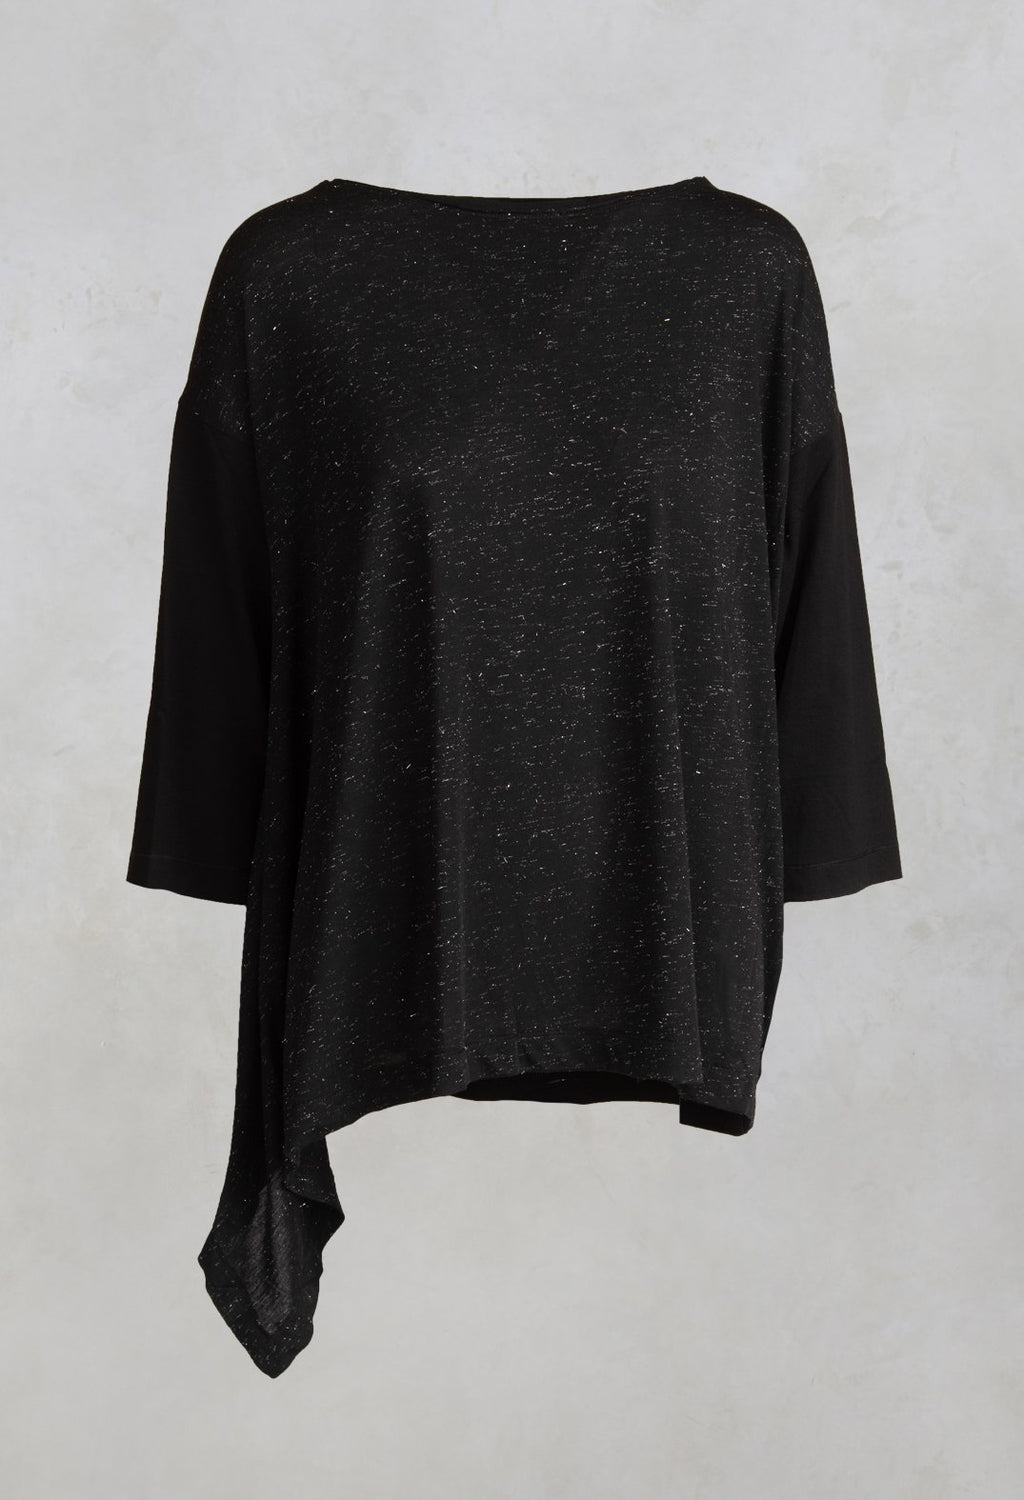 Speckled Top Shirt Loar in Black / Silver